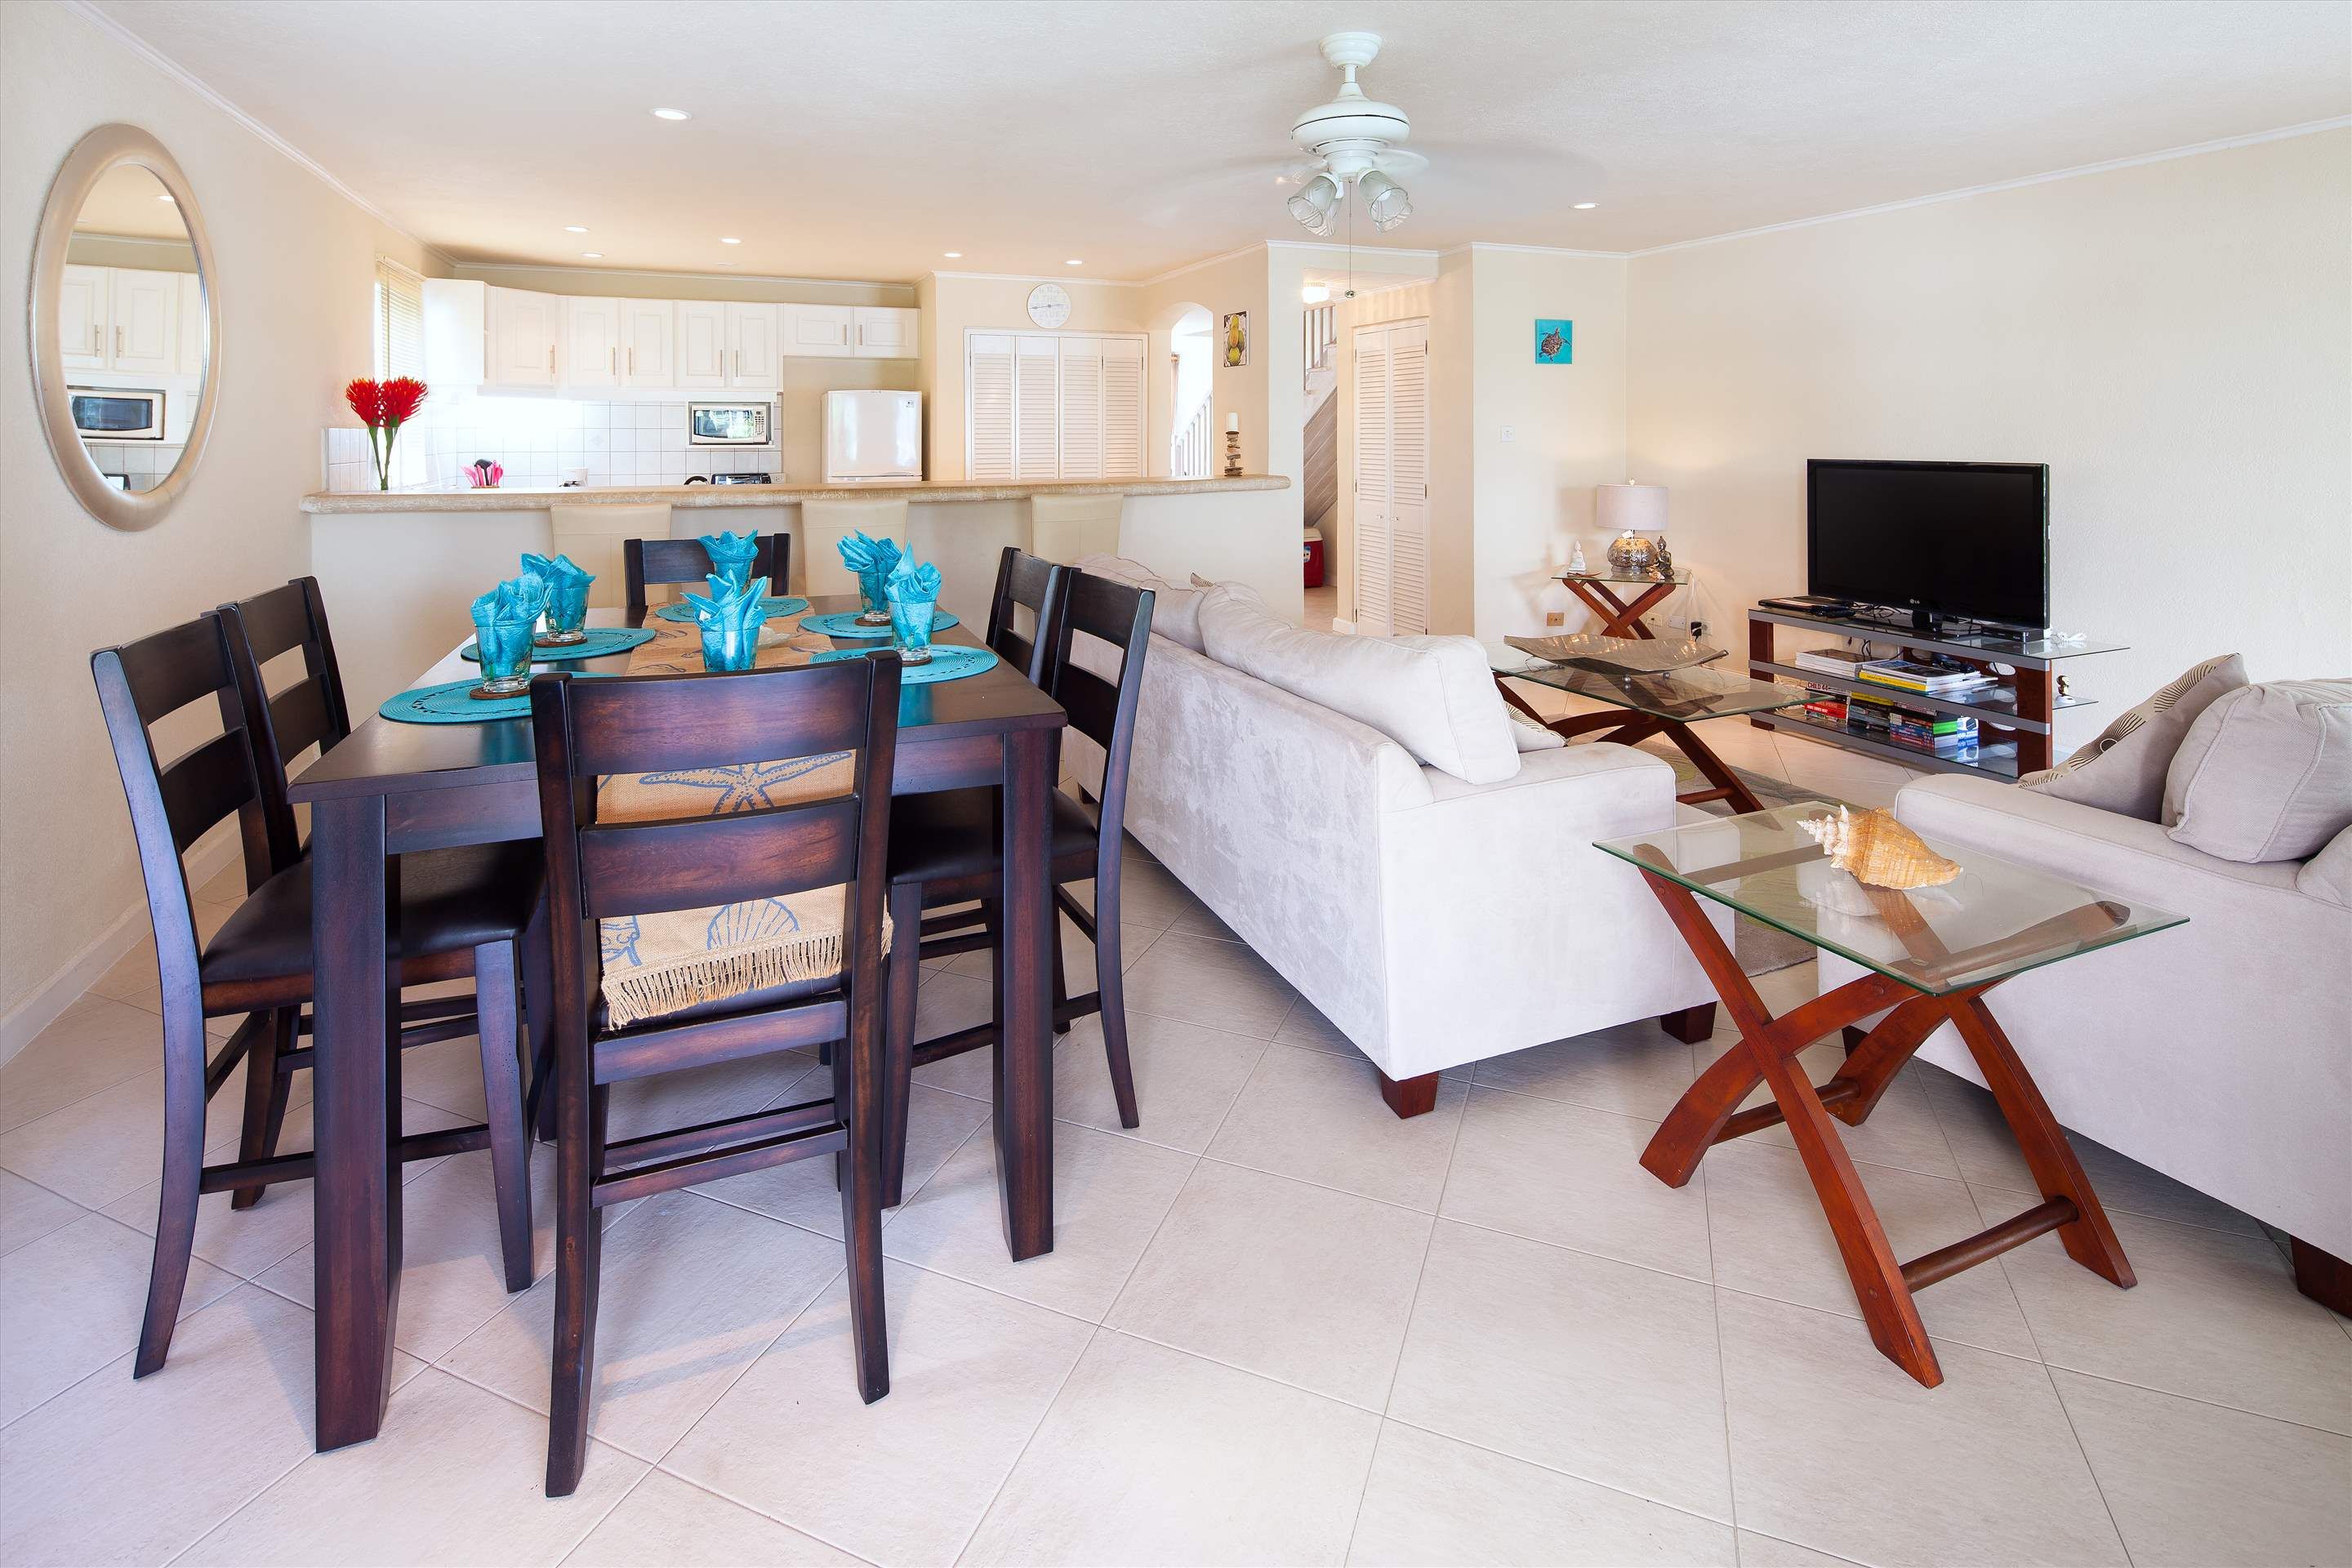 Margate Gardens 4, 3 bedroom, 3 bedroom apartment in St. Lawrence Gap & South Coast, Barbados Photo #6